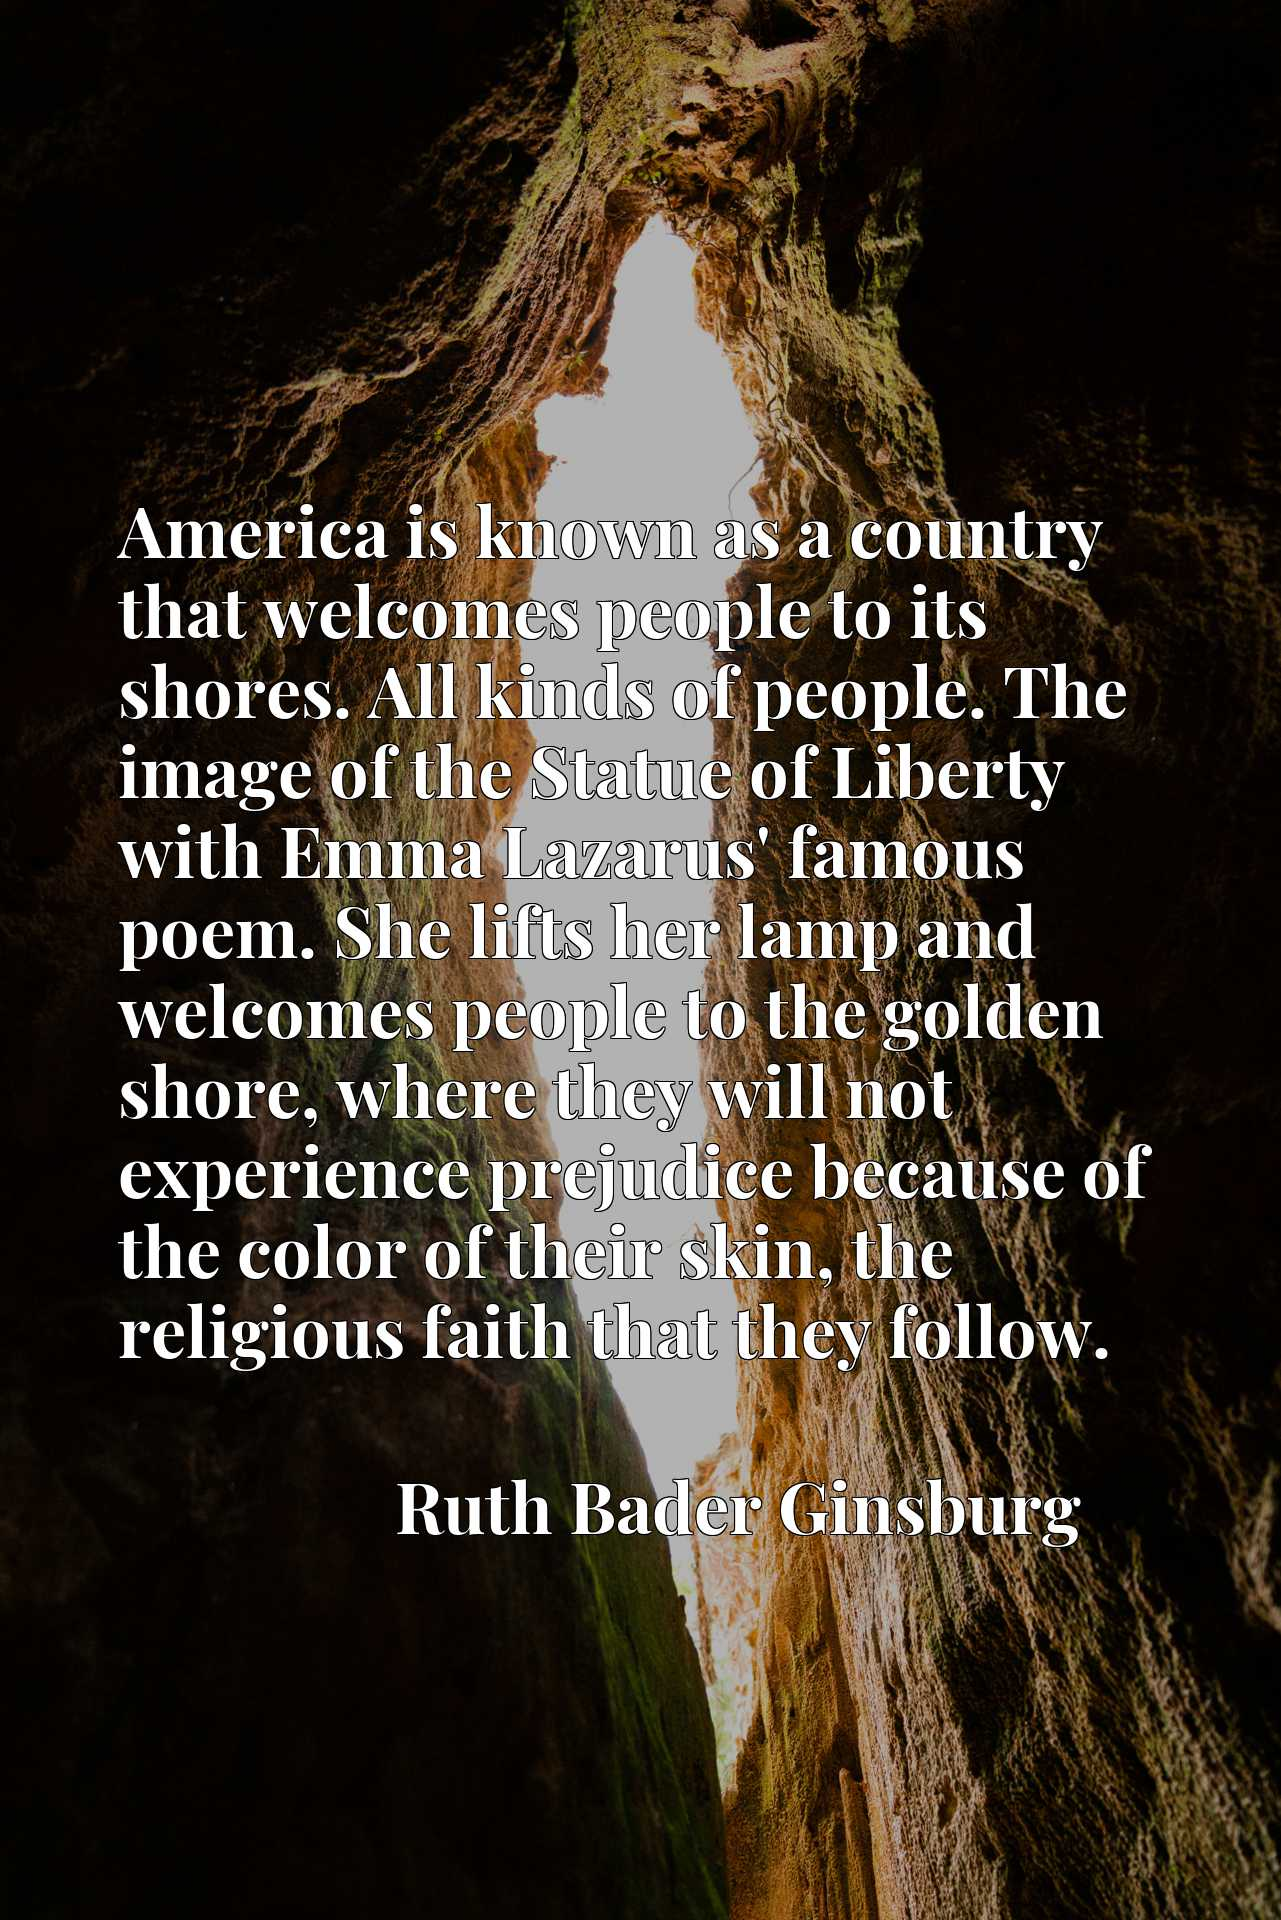 America is known as a country that welcomes people to its shores. All kinds of people. The image of the Statue of Liberty with Emma Lazarus' famous poem. She lifts her lamp and welcomes people to the golden shore, where they will not experience prejudice because of the color of their skin, the religious faith that they follow.